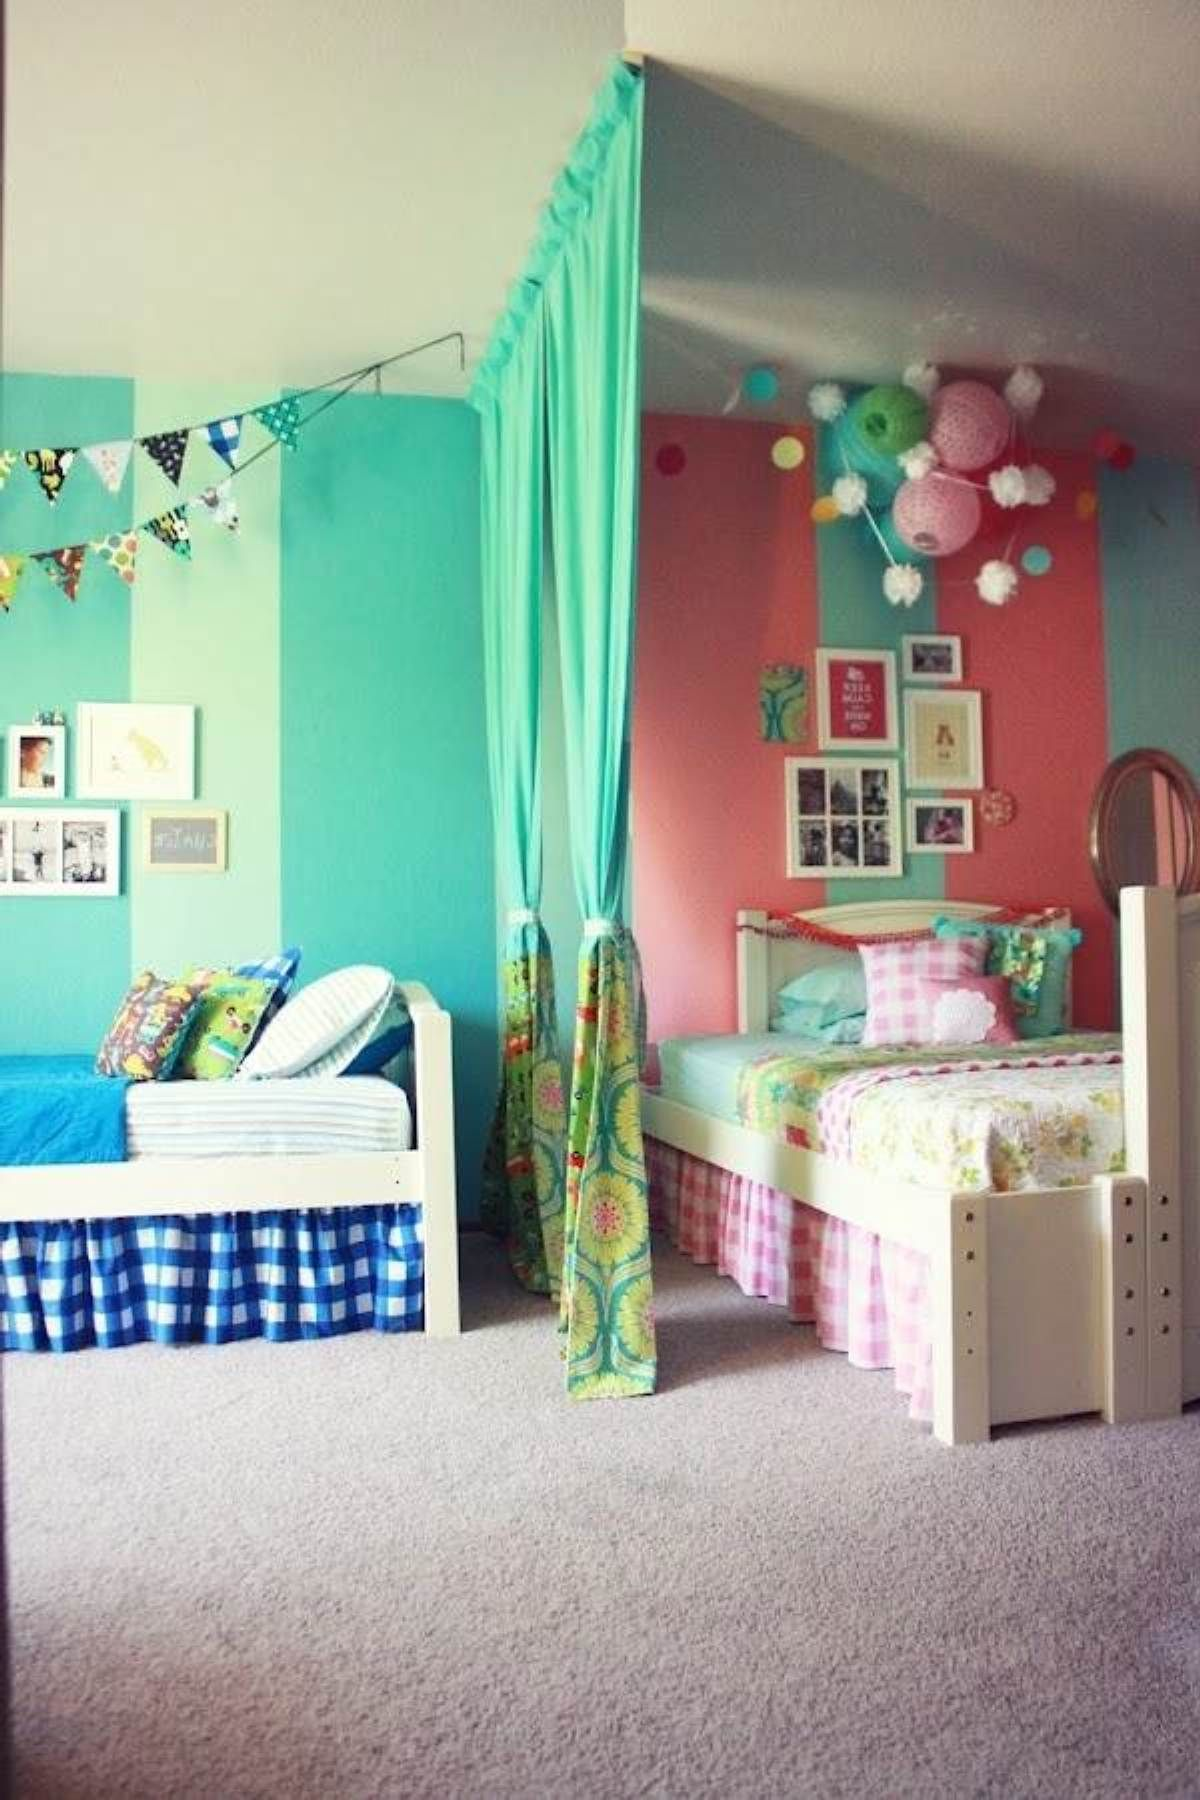 Easy And Inexpensive Painting Ideas For Kids Bedrooms Shared Girls Bedroom Small Bedroom Decor Boy And Girl Shared Bedroom Easy kid bedroom ideas